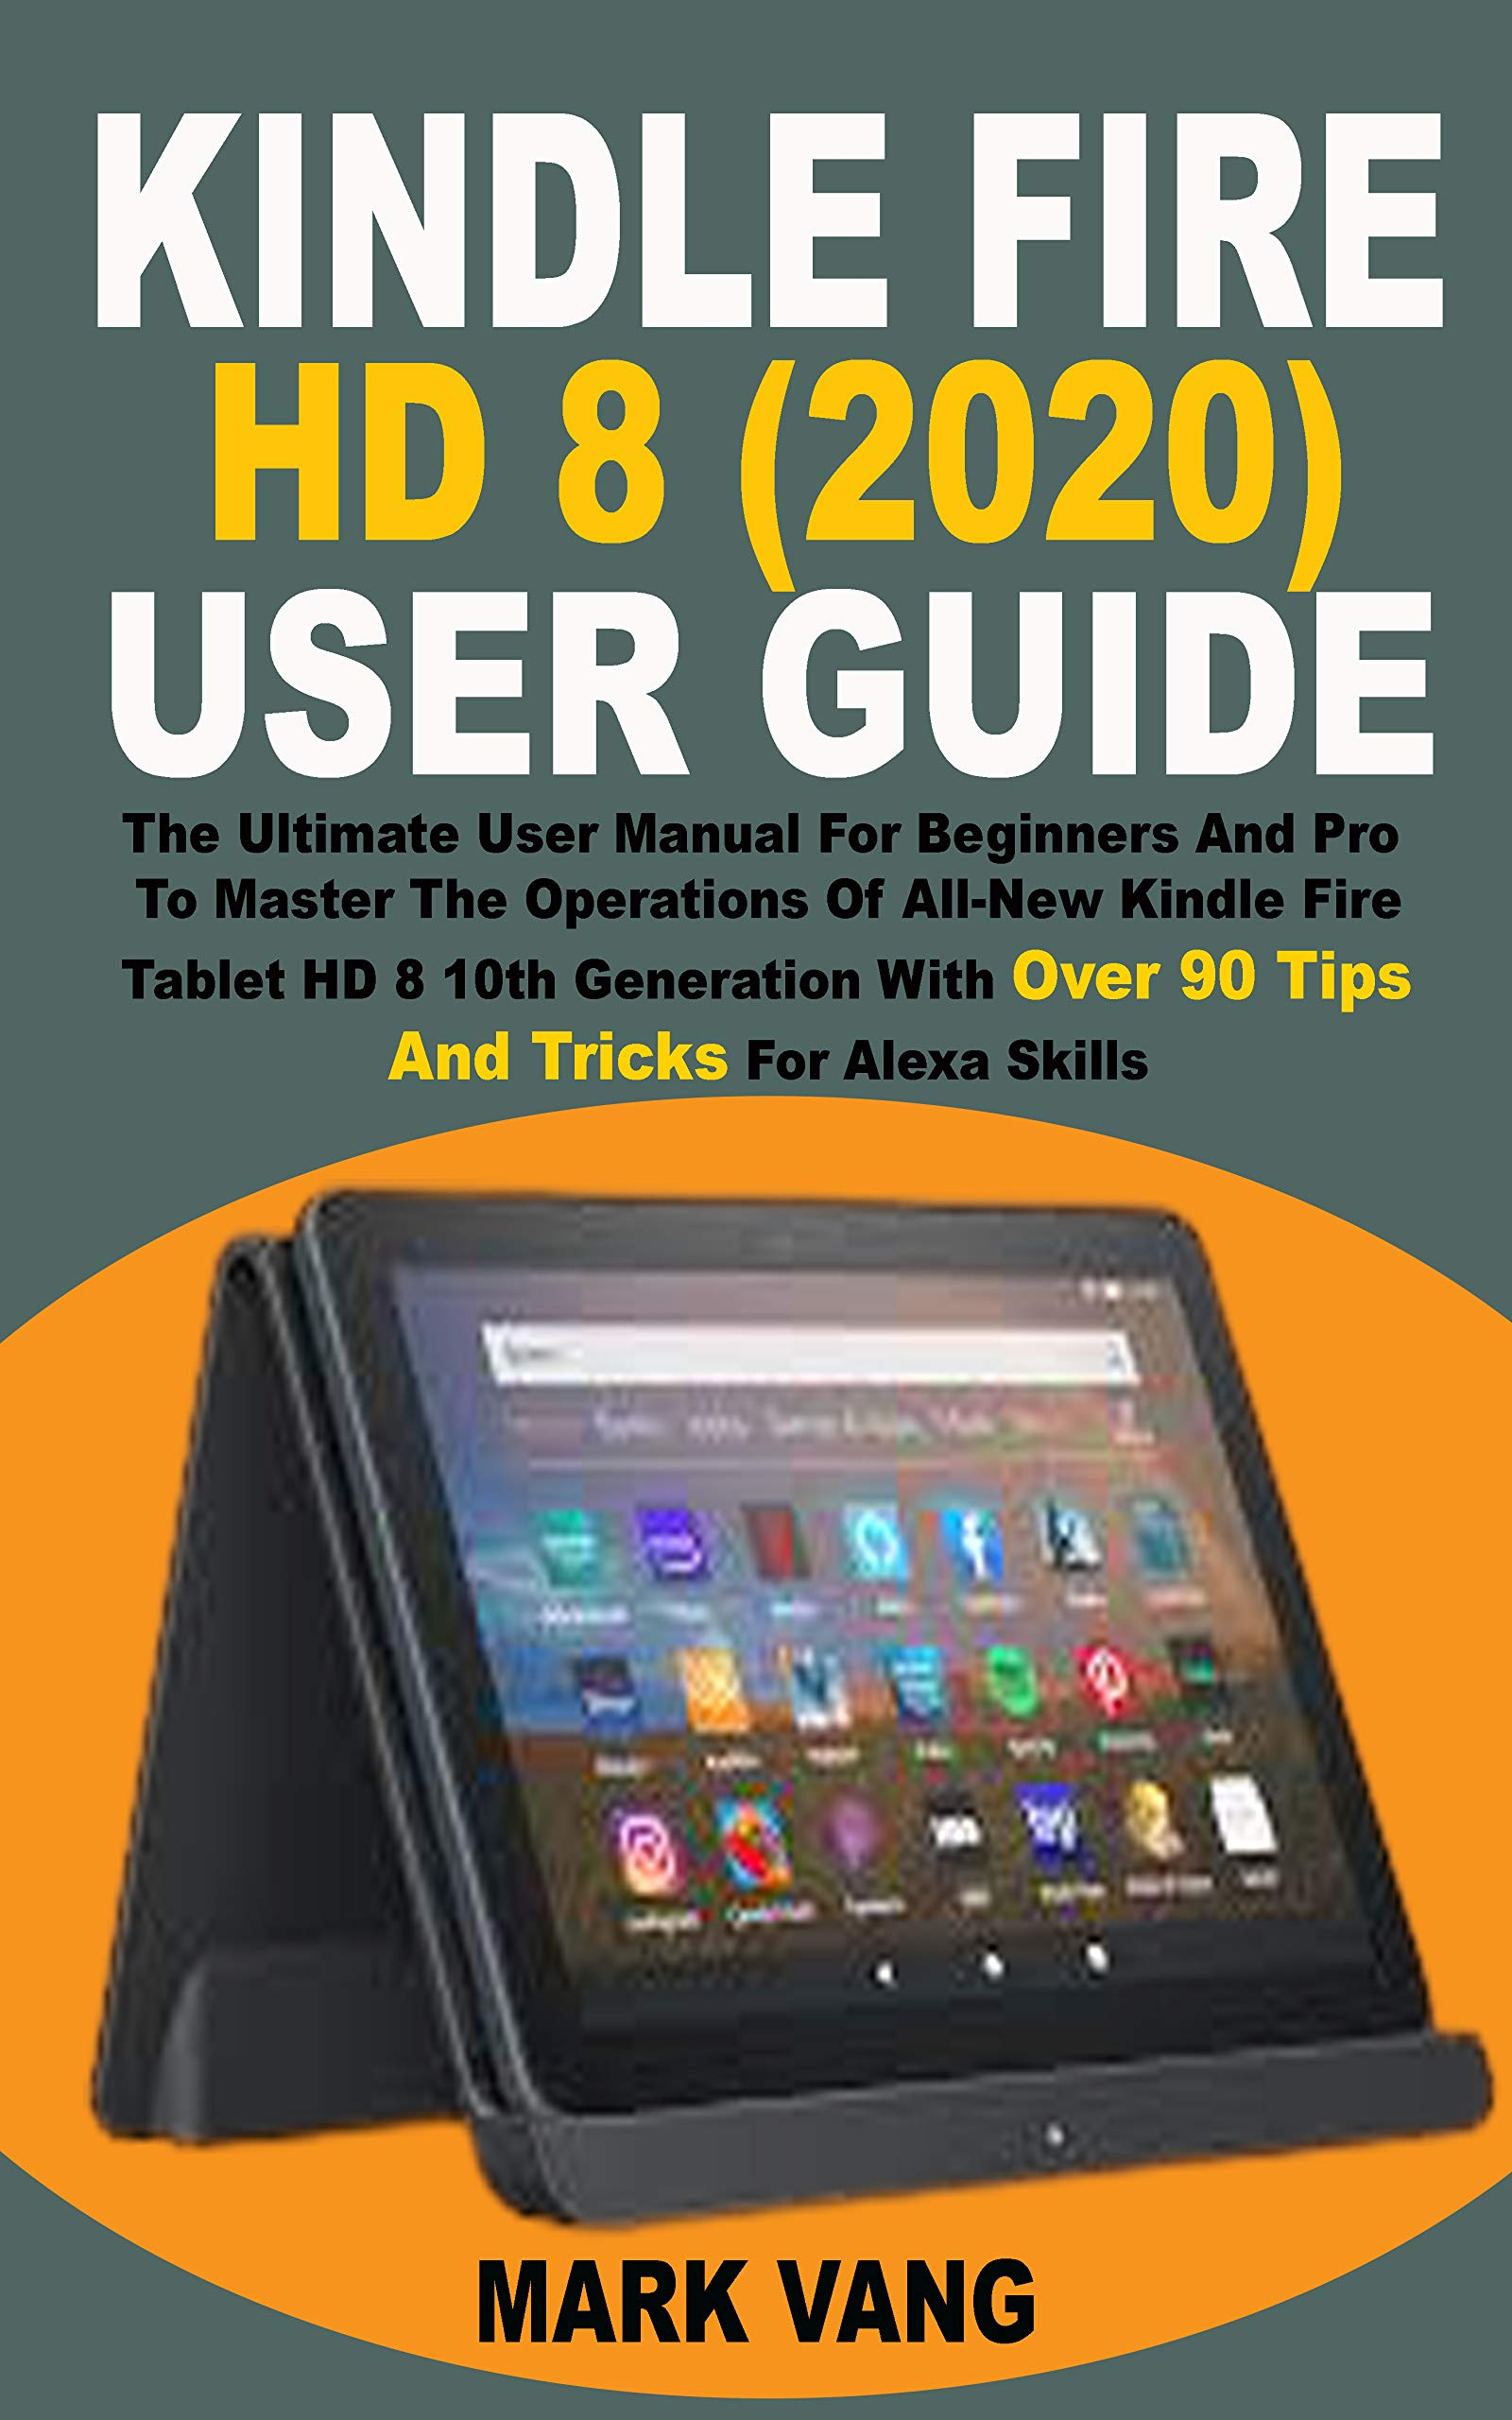 KINDLE FIRE HD 8 (2020) USER GUIDE: The Ultimate User Manual For Beginners & Pro To Master The Operations Of All-New Kindle Fire HD8 Tablet 10th Generation With Over 90 Tips & Tricks For Alexa Skills